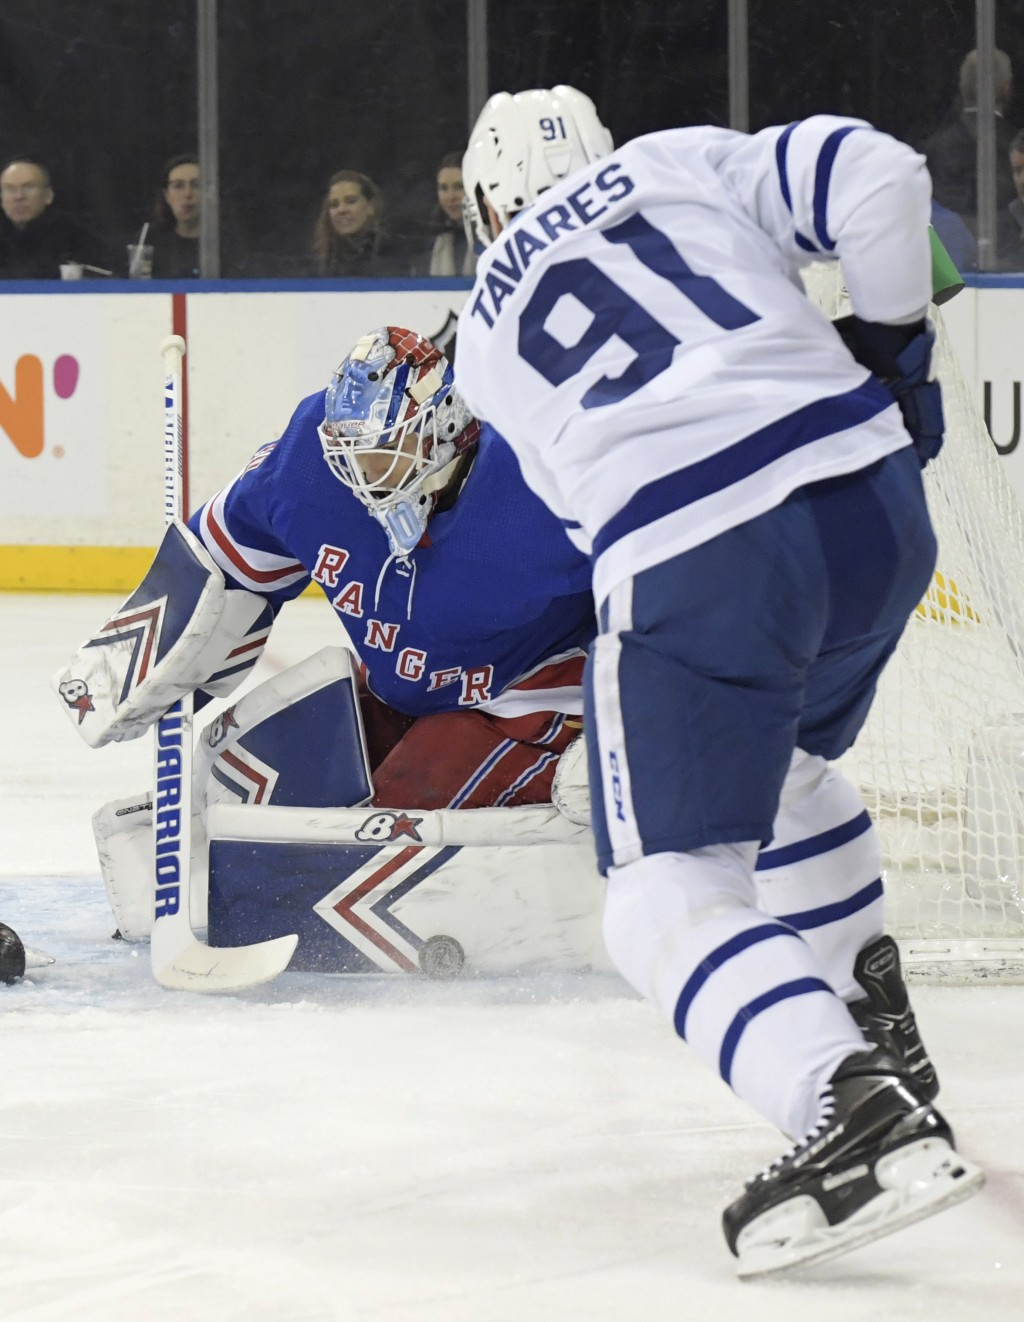 New York Rangers goaltender Alexandar Georgiev (40) makes a save on a shot by Toronto Maple Leafs center John Tavares (91) during the first period of